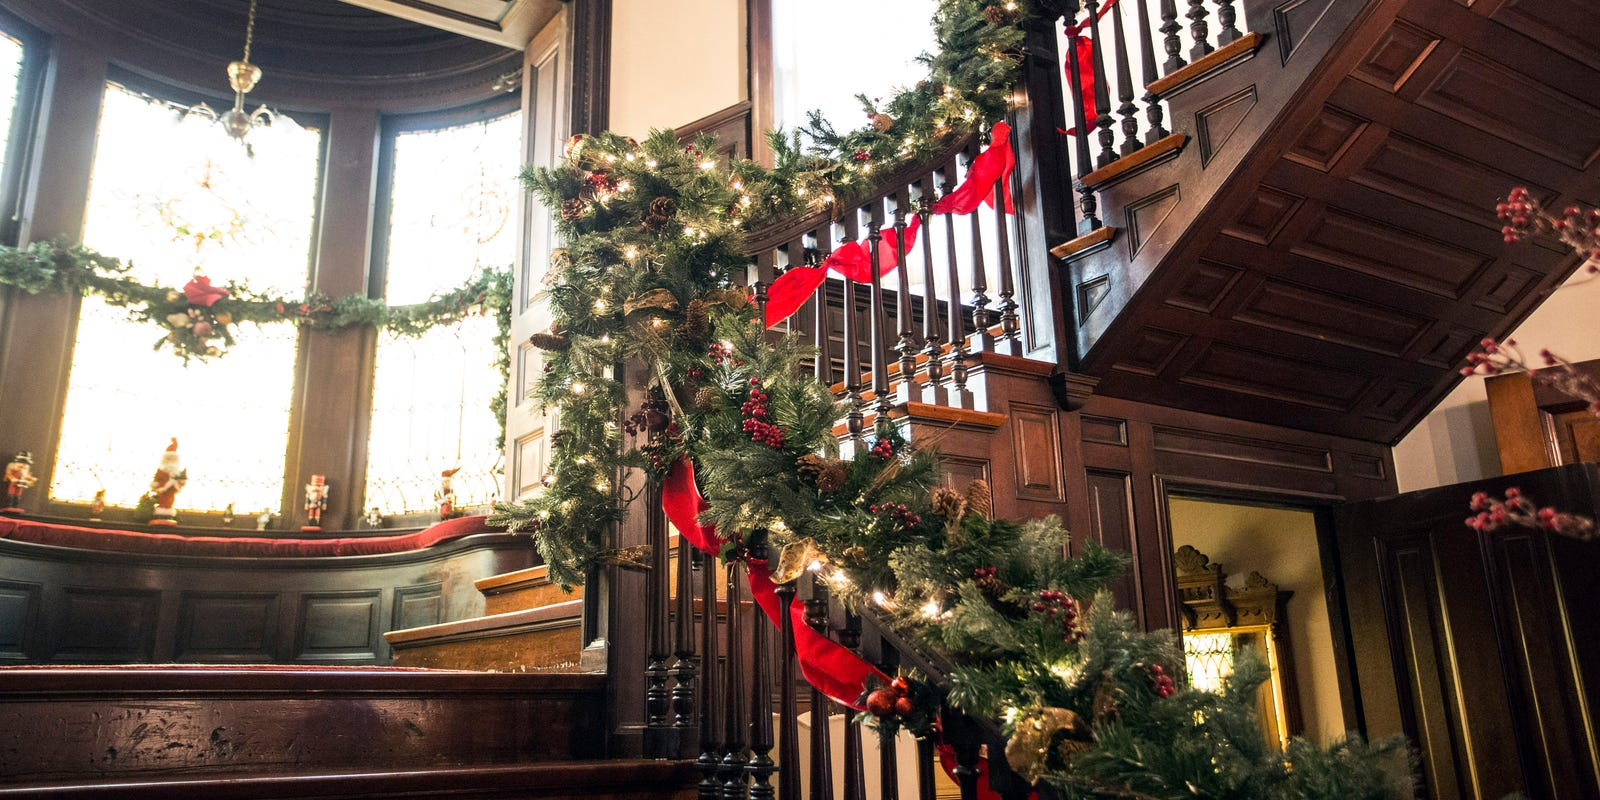 How To See Inside Those Beautiful Victorian Homes In Old Louisville This Holiday Season